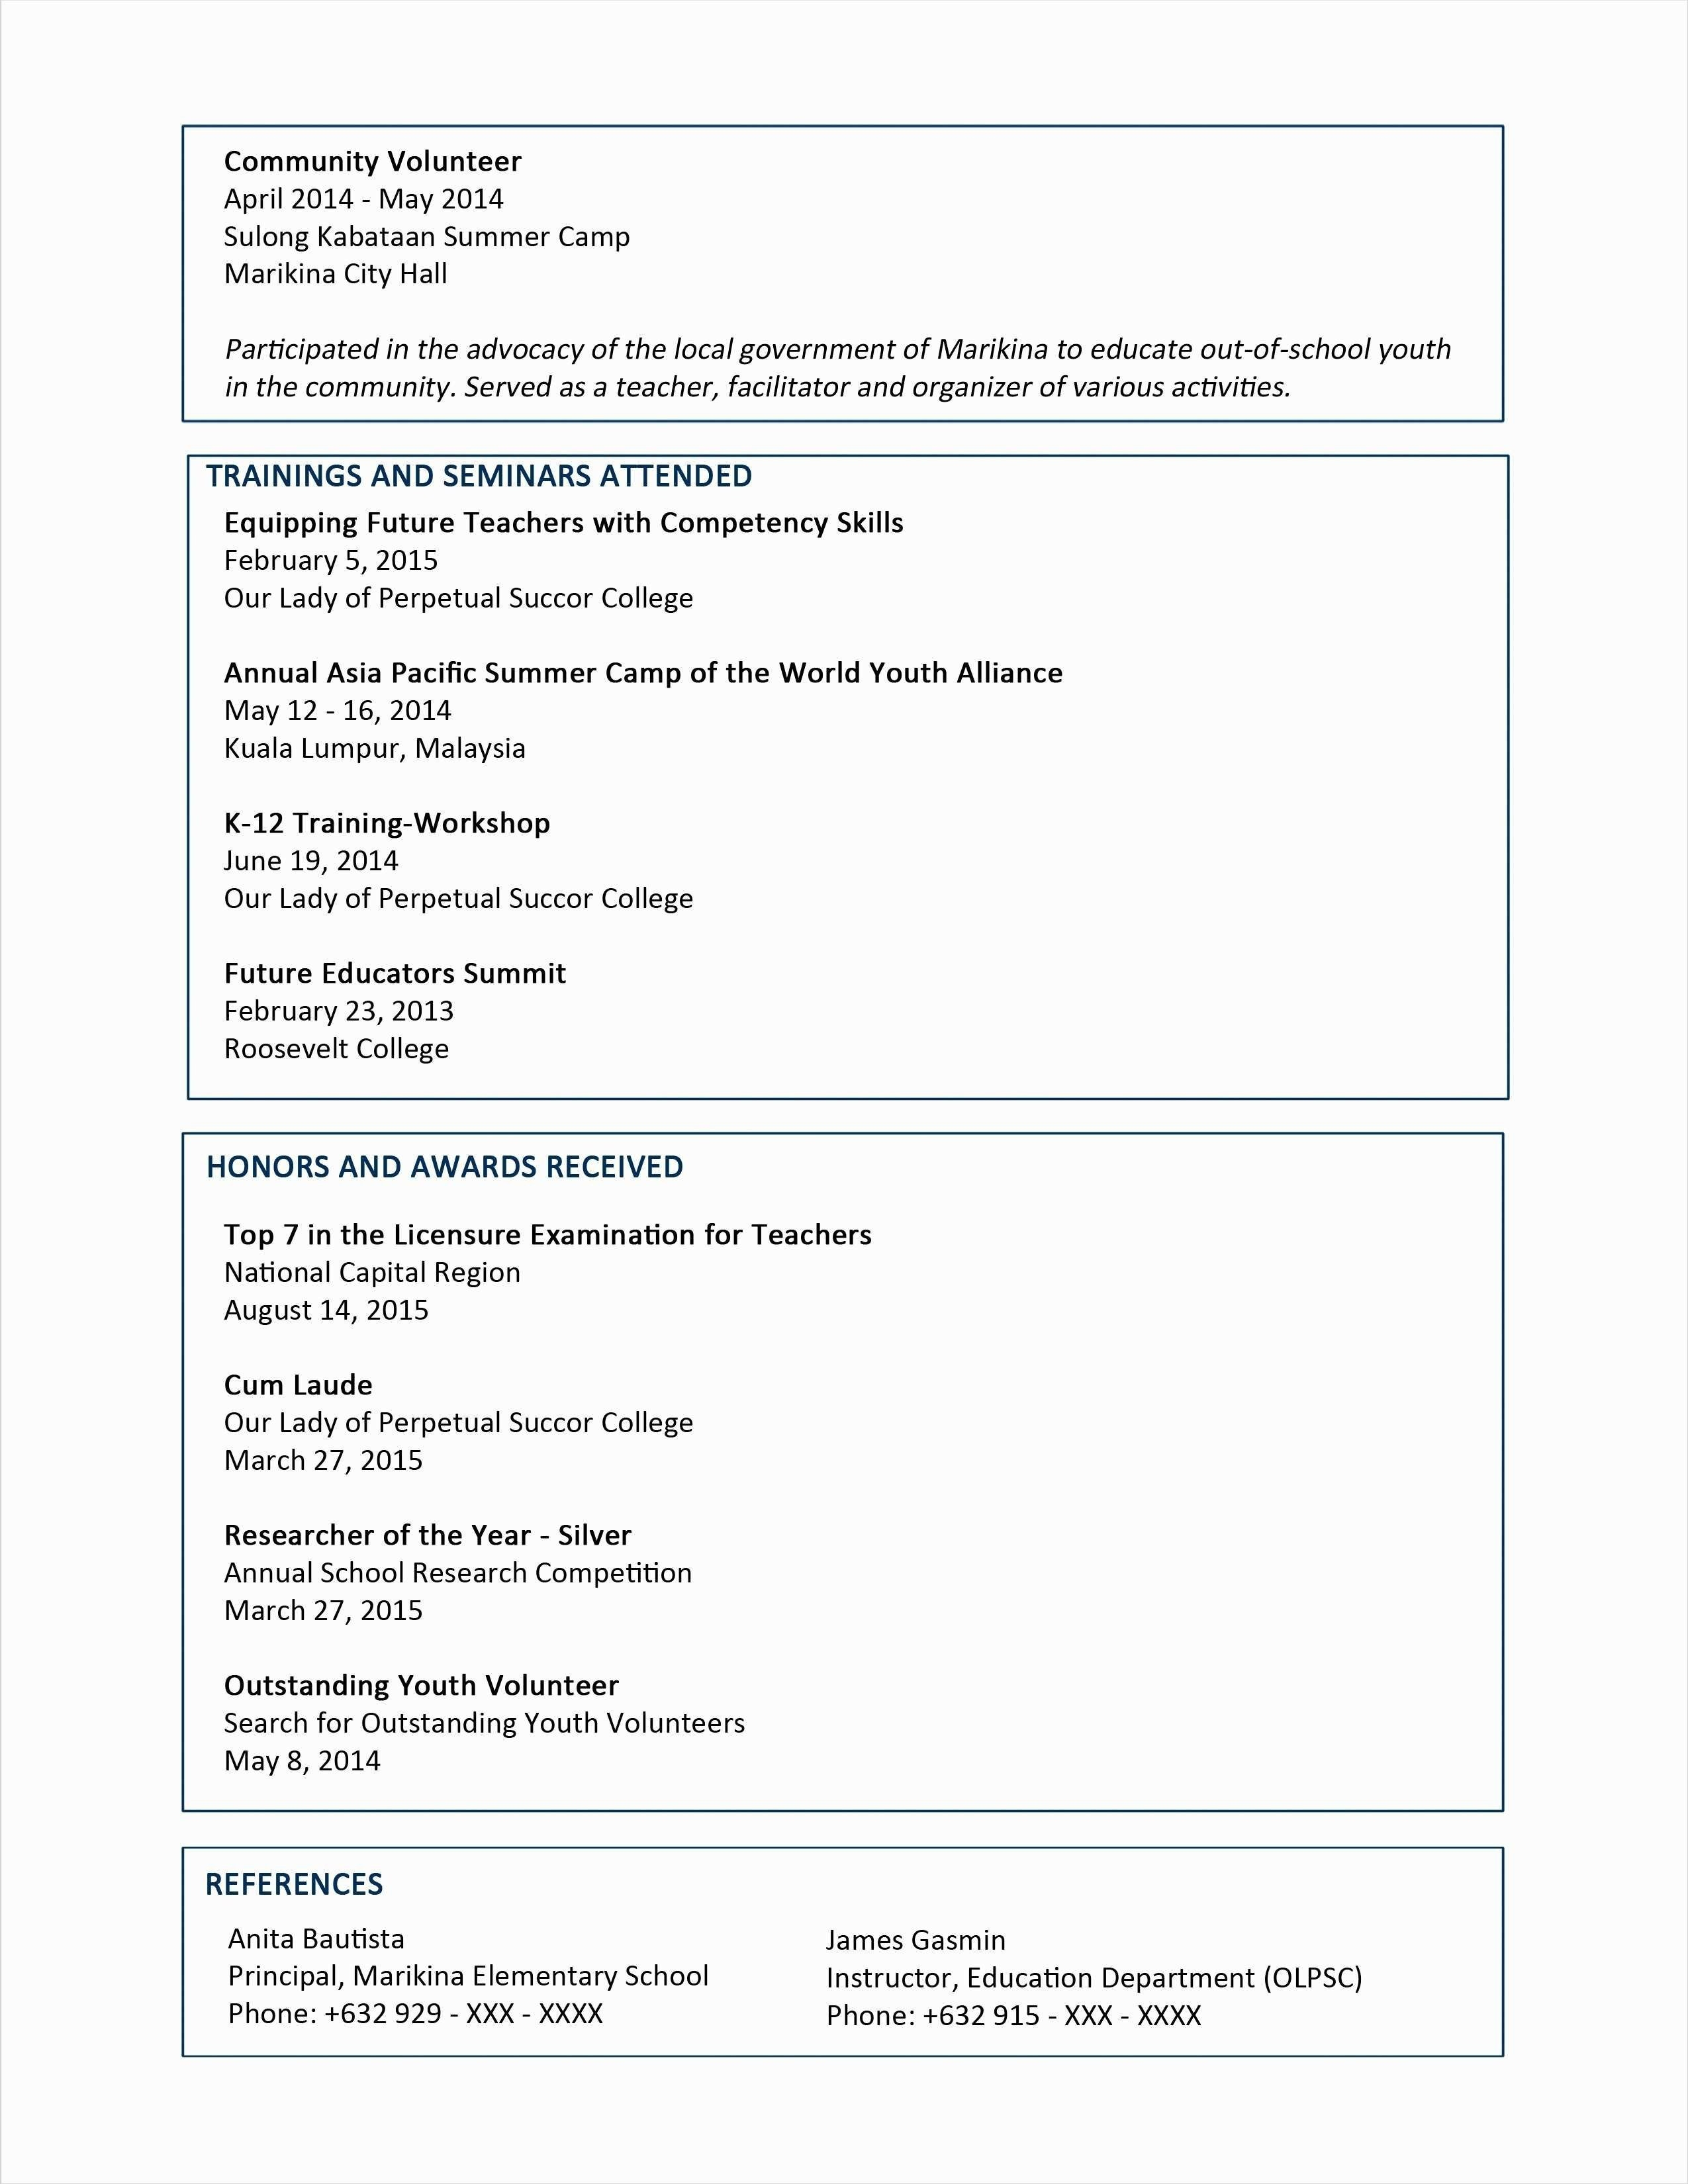 hybrid resume template Collection-Hybrid Resume Template 15-f